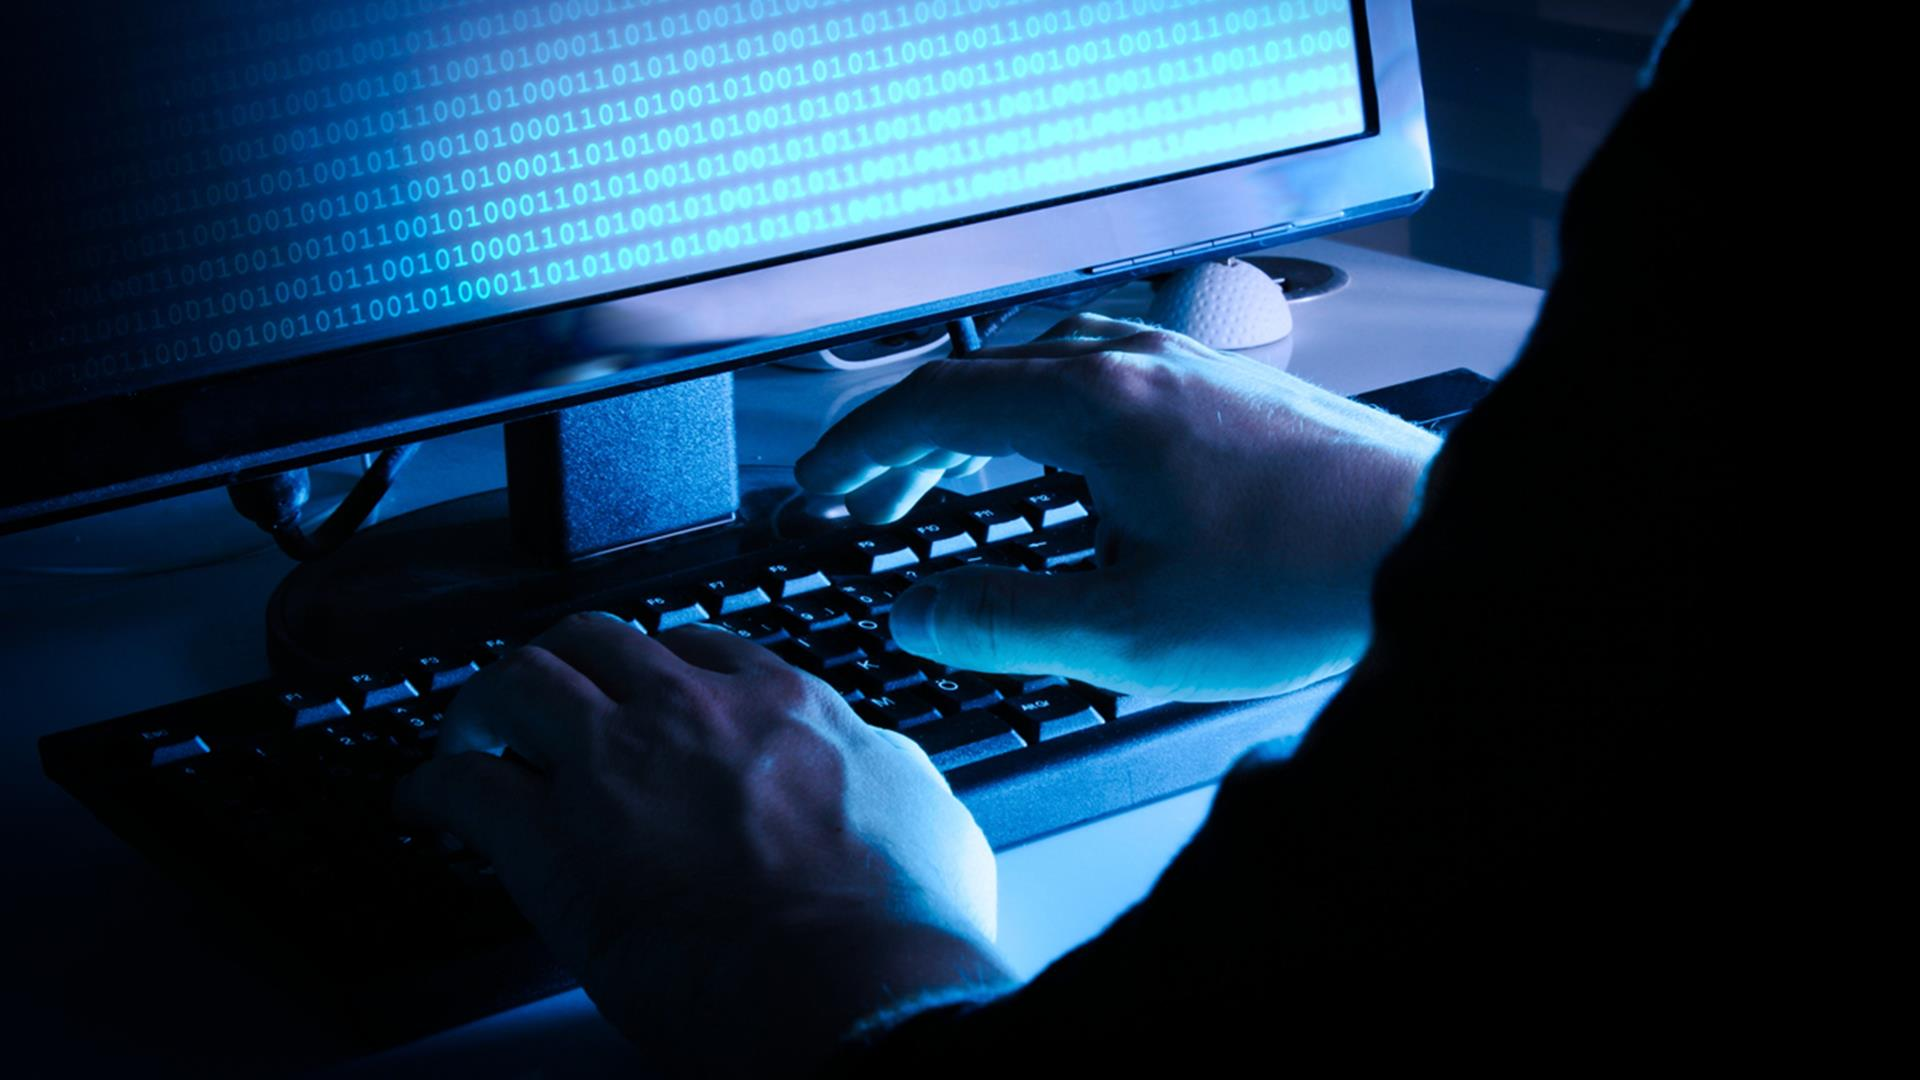 6 Simple Tips To Increase Your Small Business Security Using Inexpensive Cybersecurity Measures